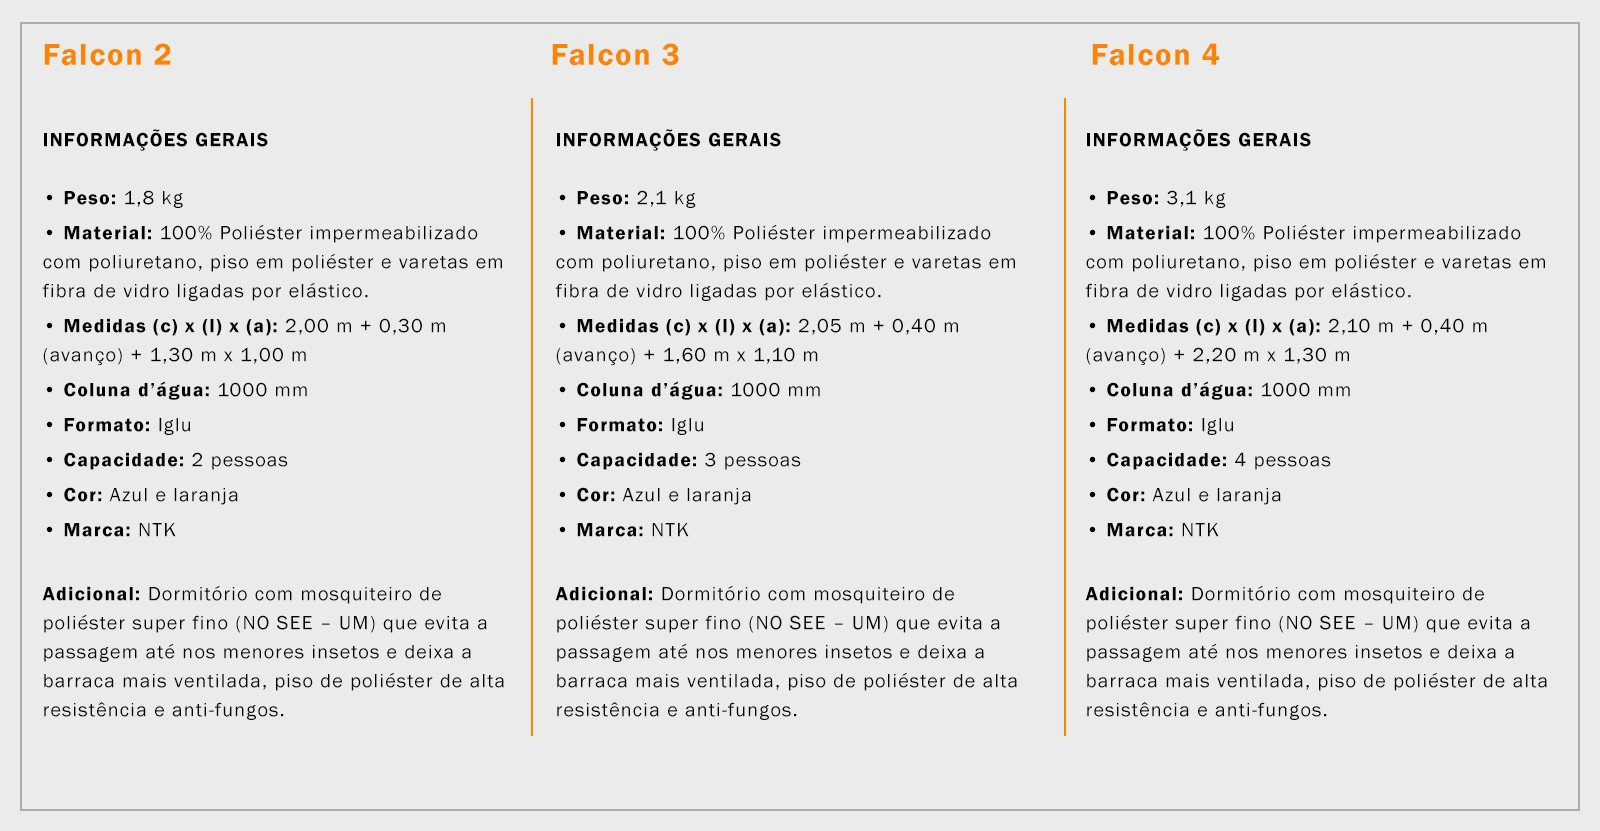 descricao falcon